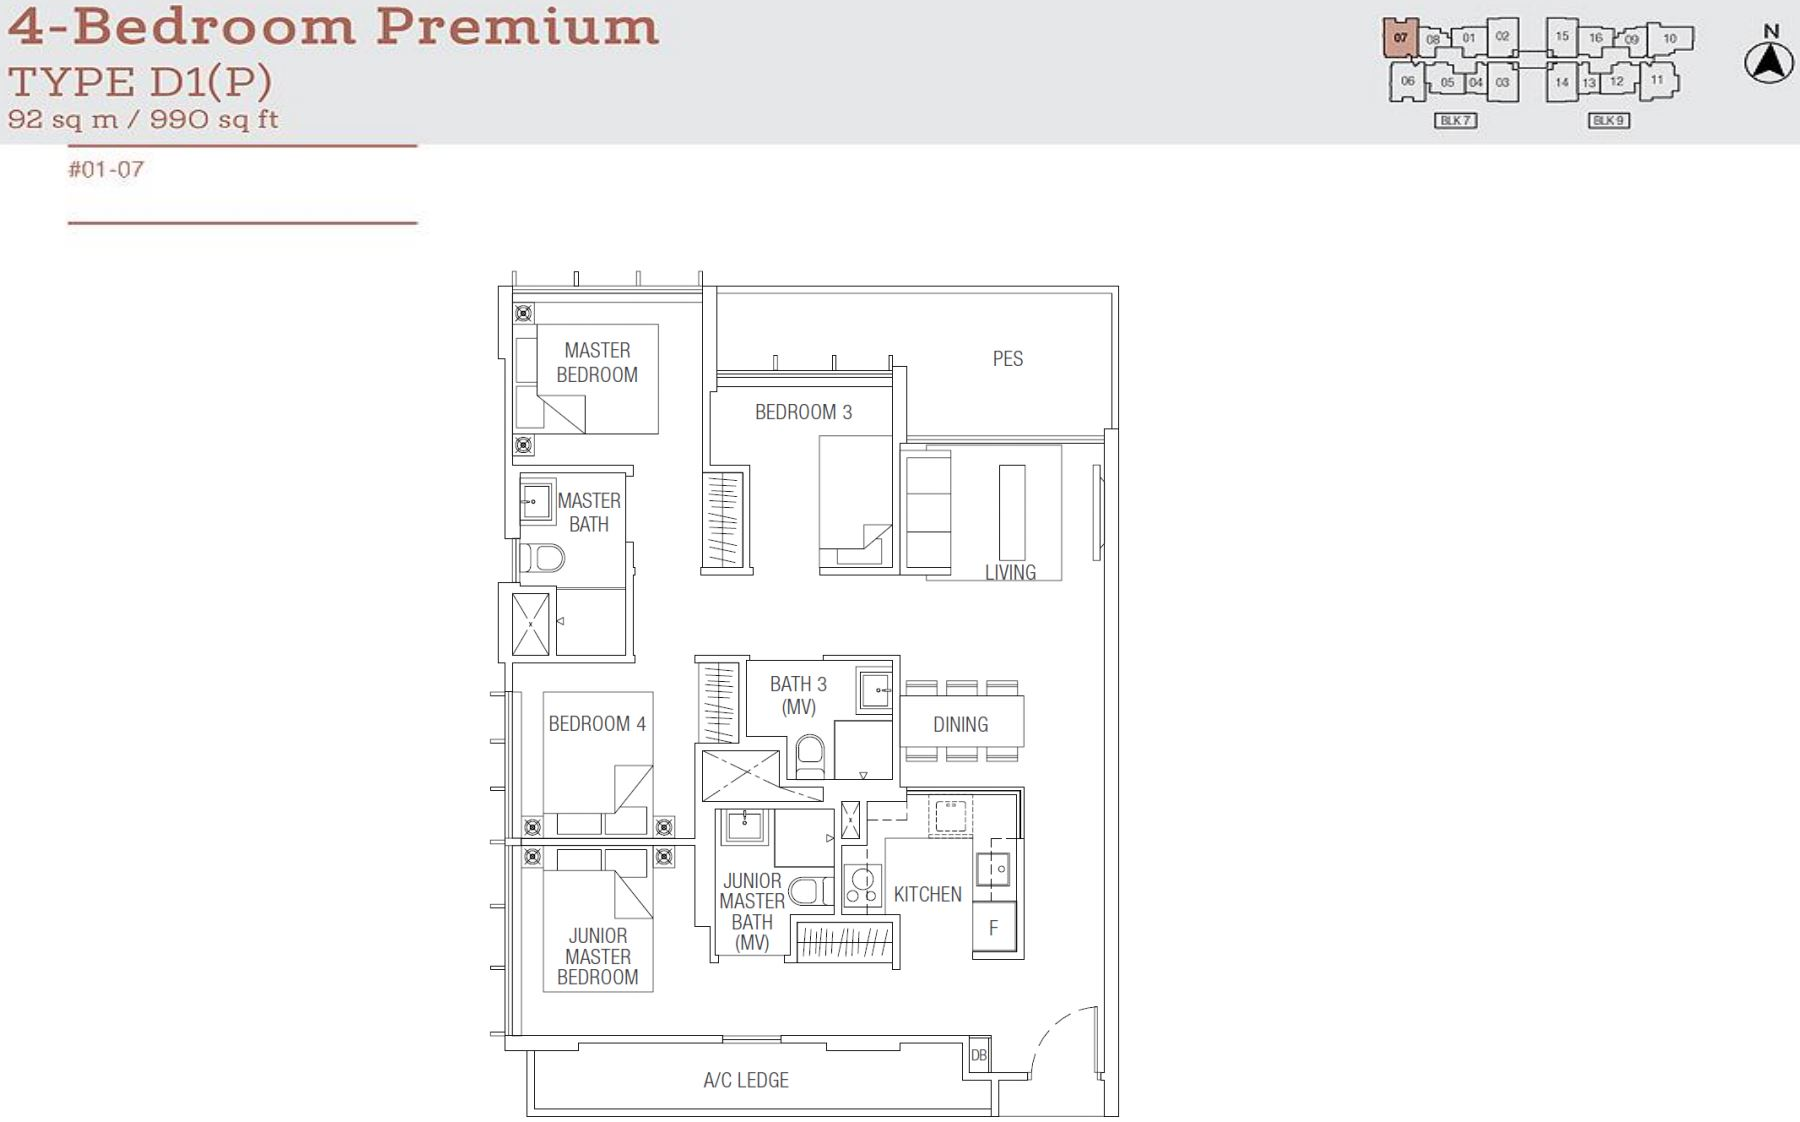 Tre Residences FloorPlan - 4 Bedroom Premium Type D1(P)